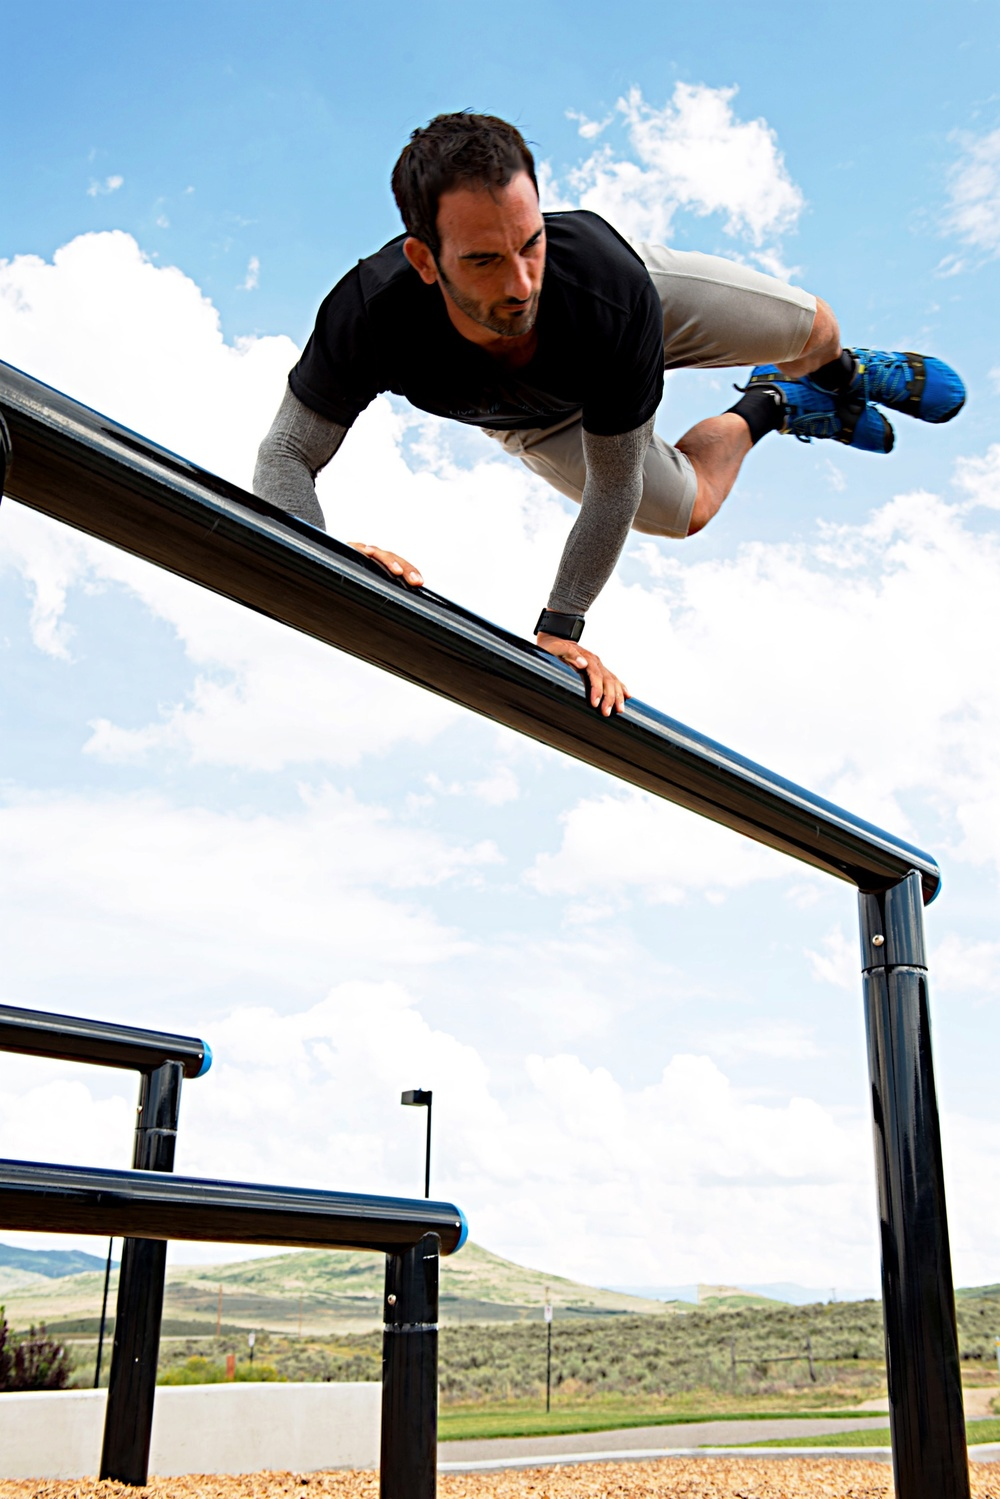 Agility post part of FitGround